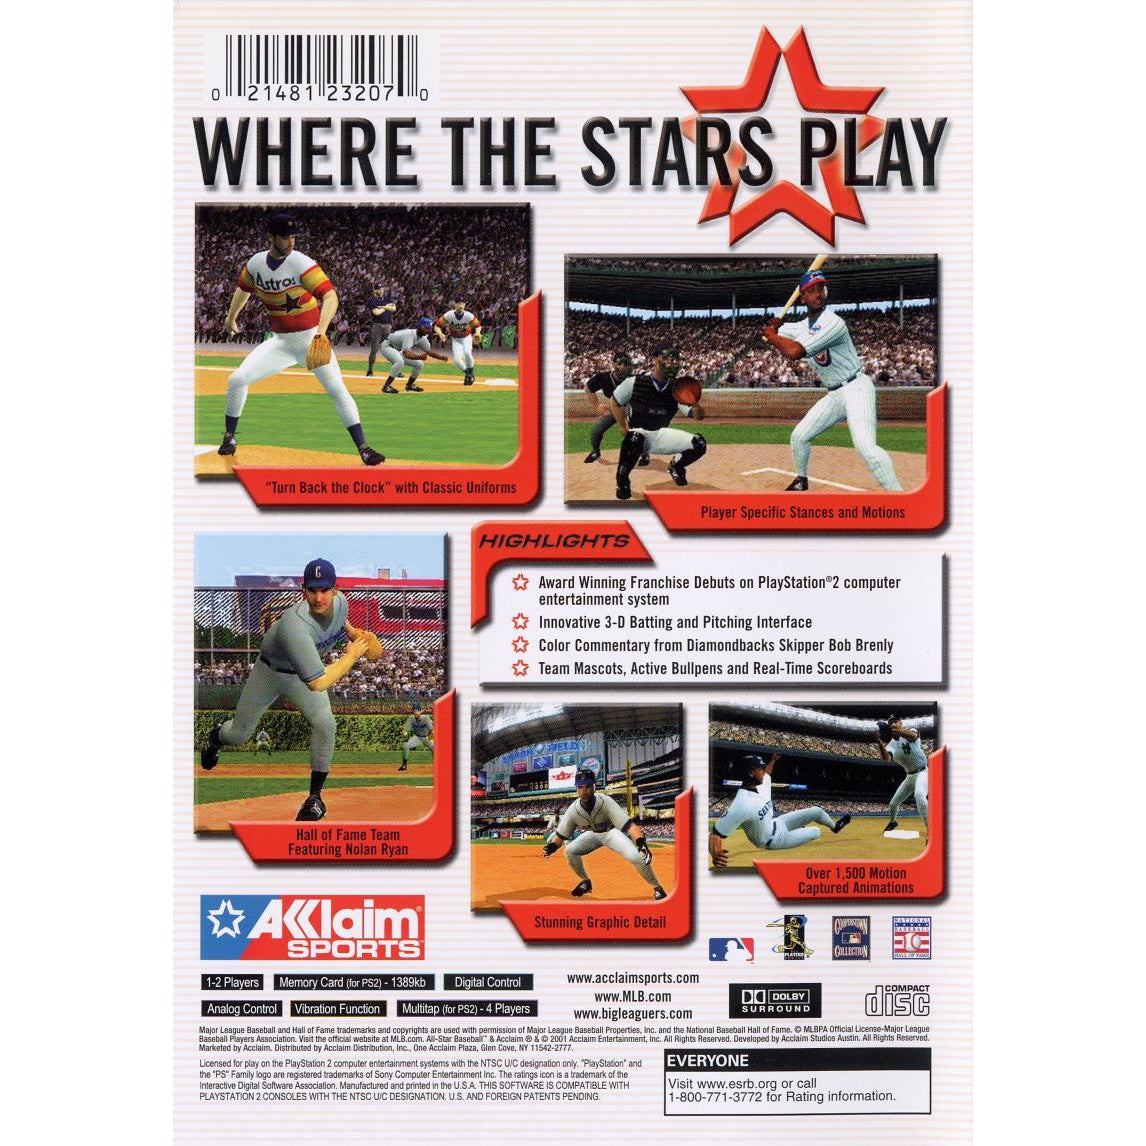 All-Star Baseball 2002 - PlayStation 2 (PS2) Game Complete - YourGamingShop.com - Buy, Sell, Trade Video Games Online. 120 Day Warranty. Satisfaction Guaranteed.